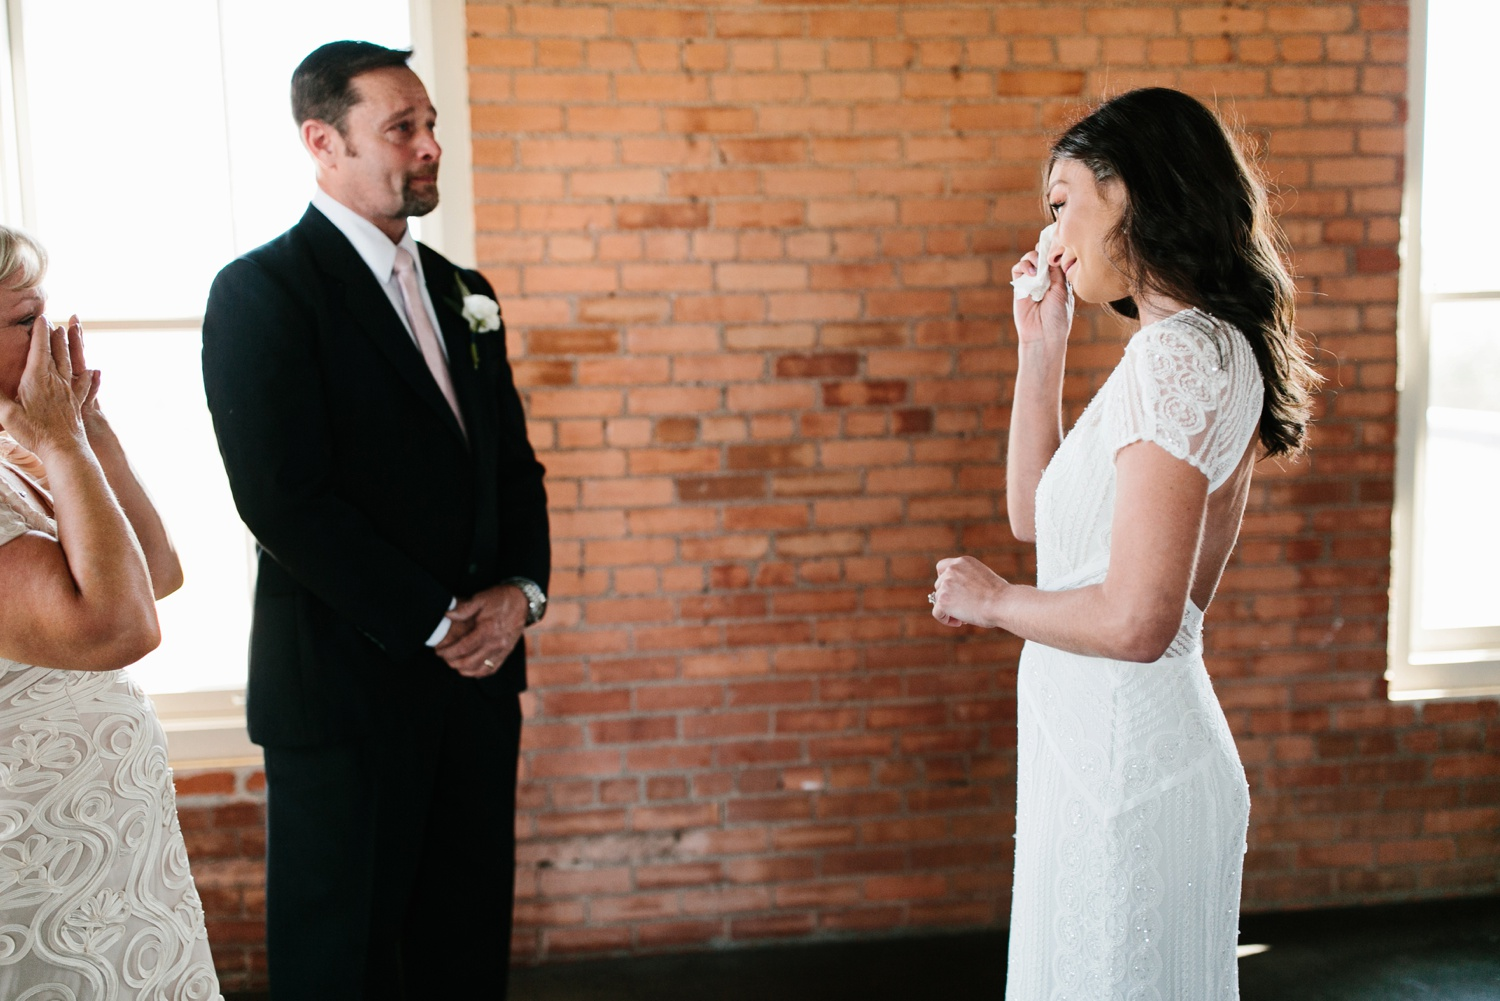 Kadee + Tyler | a raw, emotional wedding at the Filter Building on White Rock Lake in Dallas, TX by North Texas Wedding Photographer, Rachel Meagan Photography 030